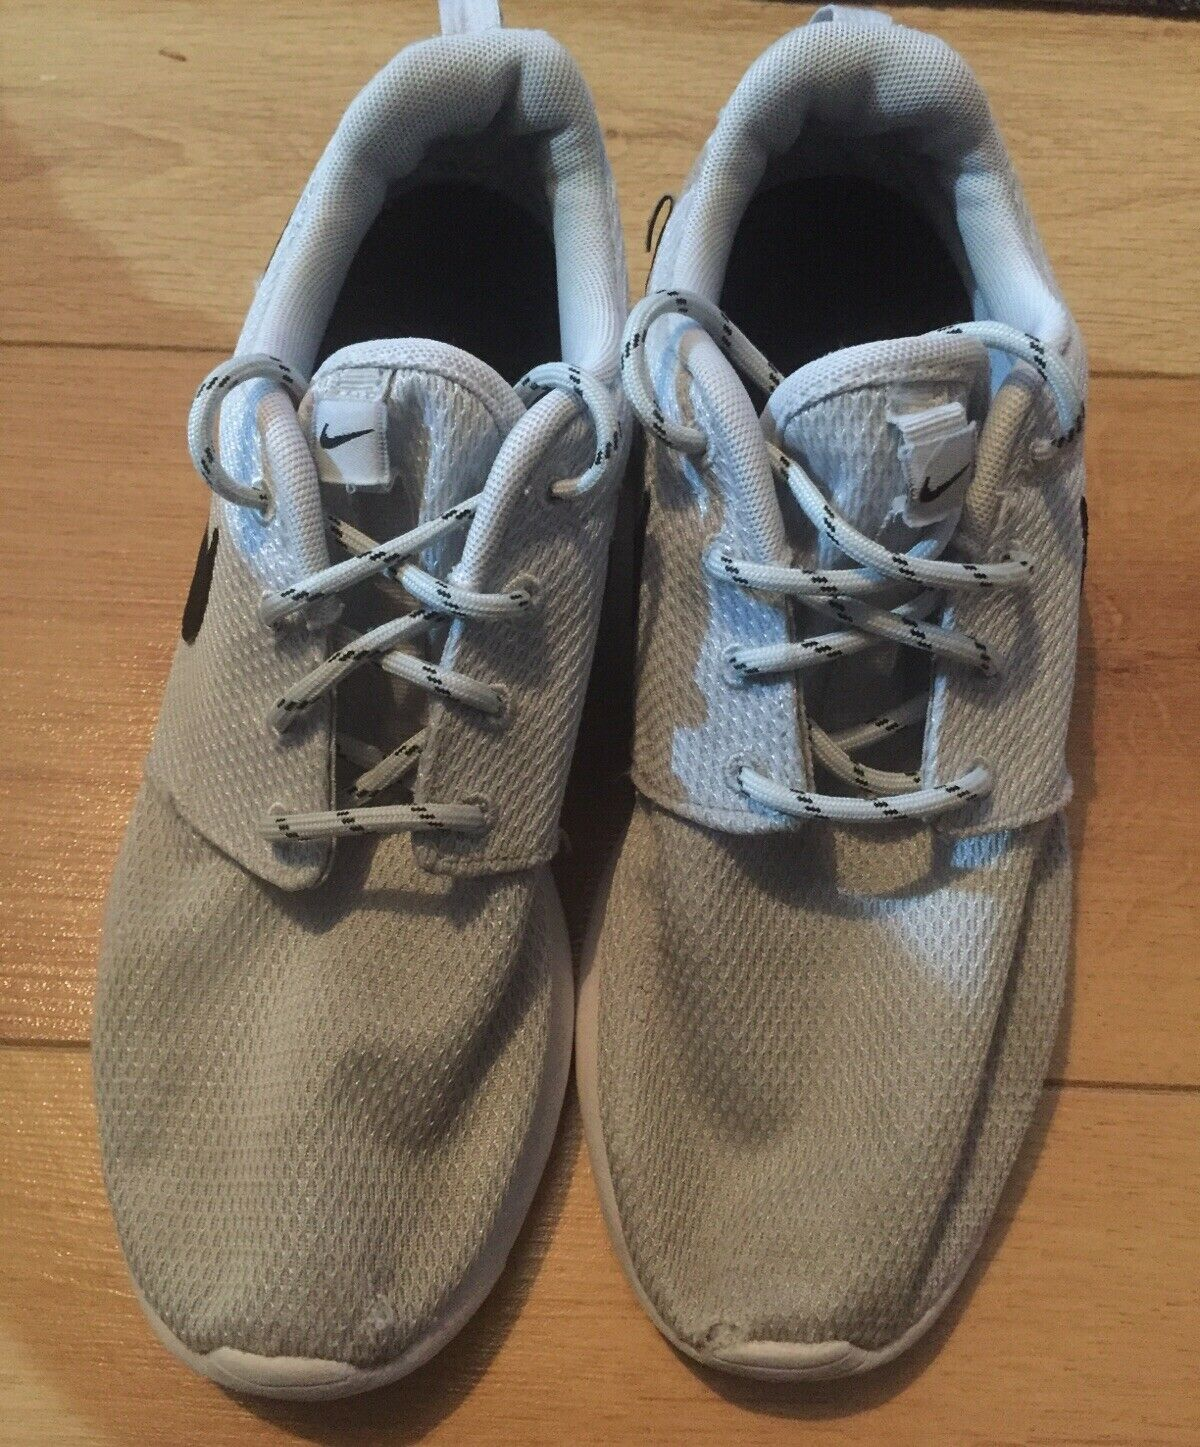 Nike Roshe One Wmns UE 40,5 US 9, UK 6.5 Chaussures Pointure 511882-081 Chaussures De Sport